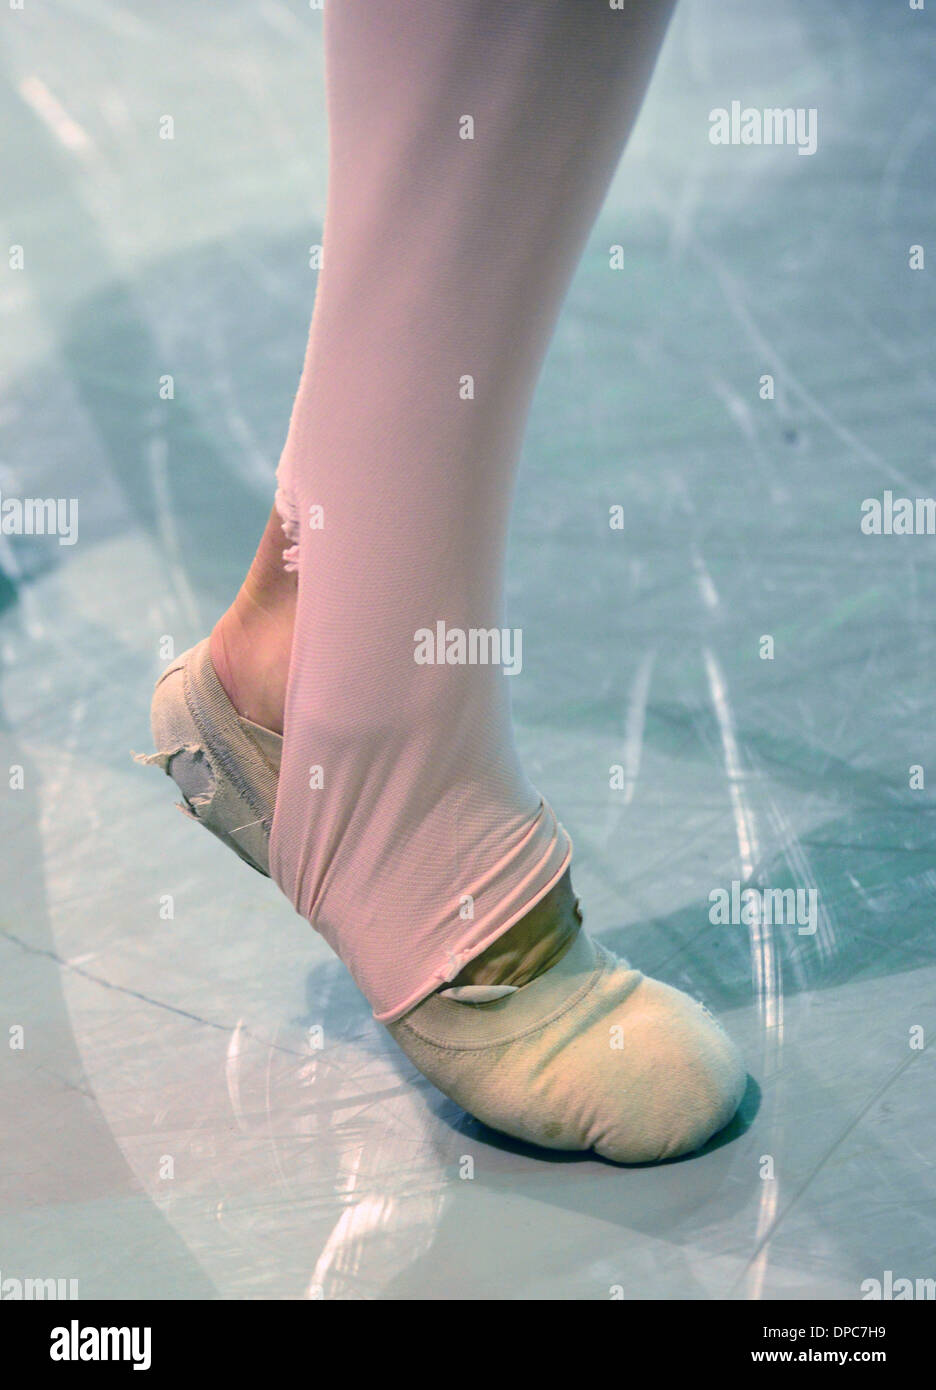 ballet dancer foot with worn out shoes - Stock Image